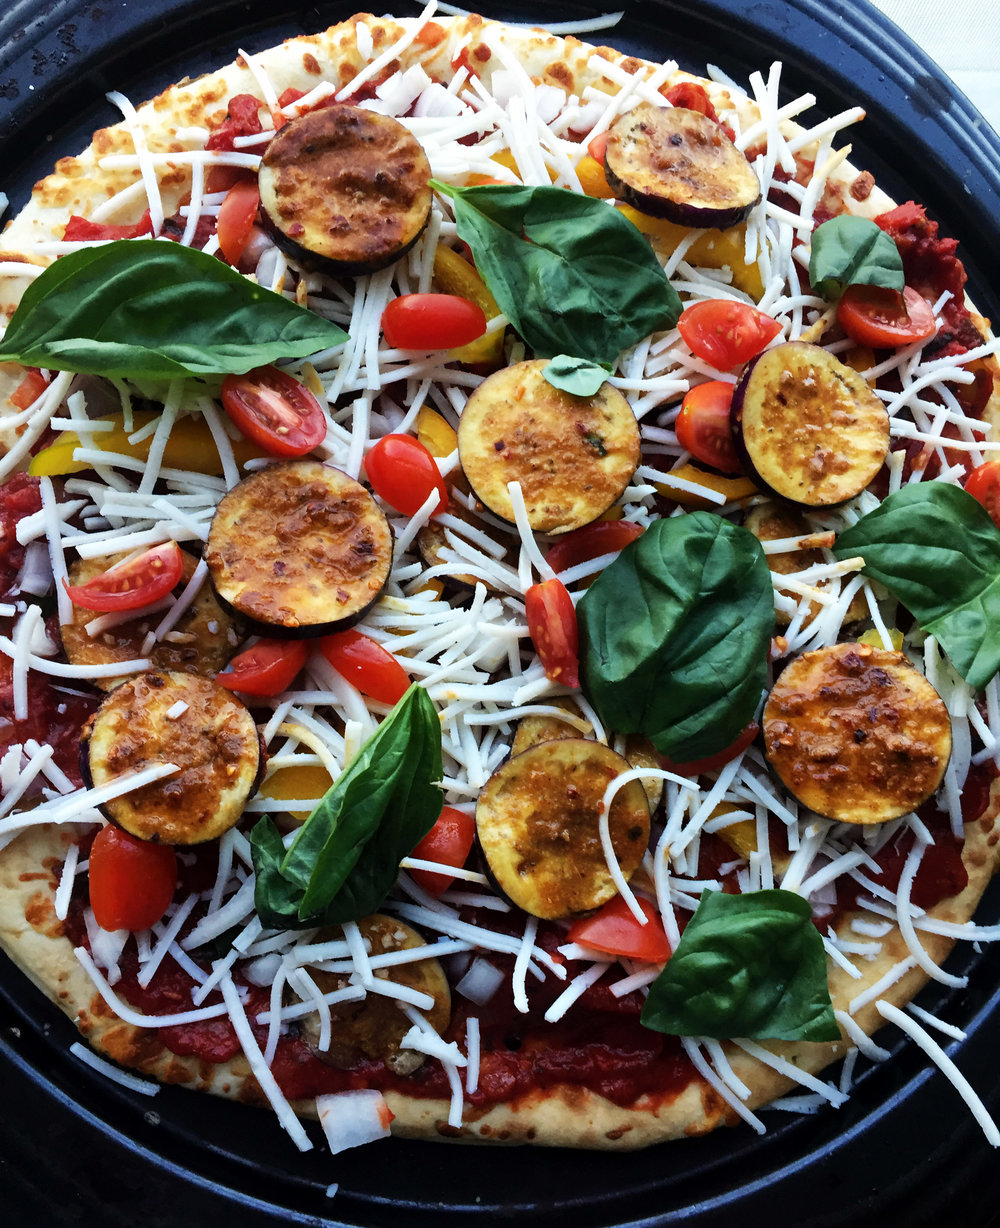 8. Add the cheese, pepperoni slices, a few grape tomatoes, and basil pieces.